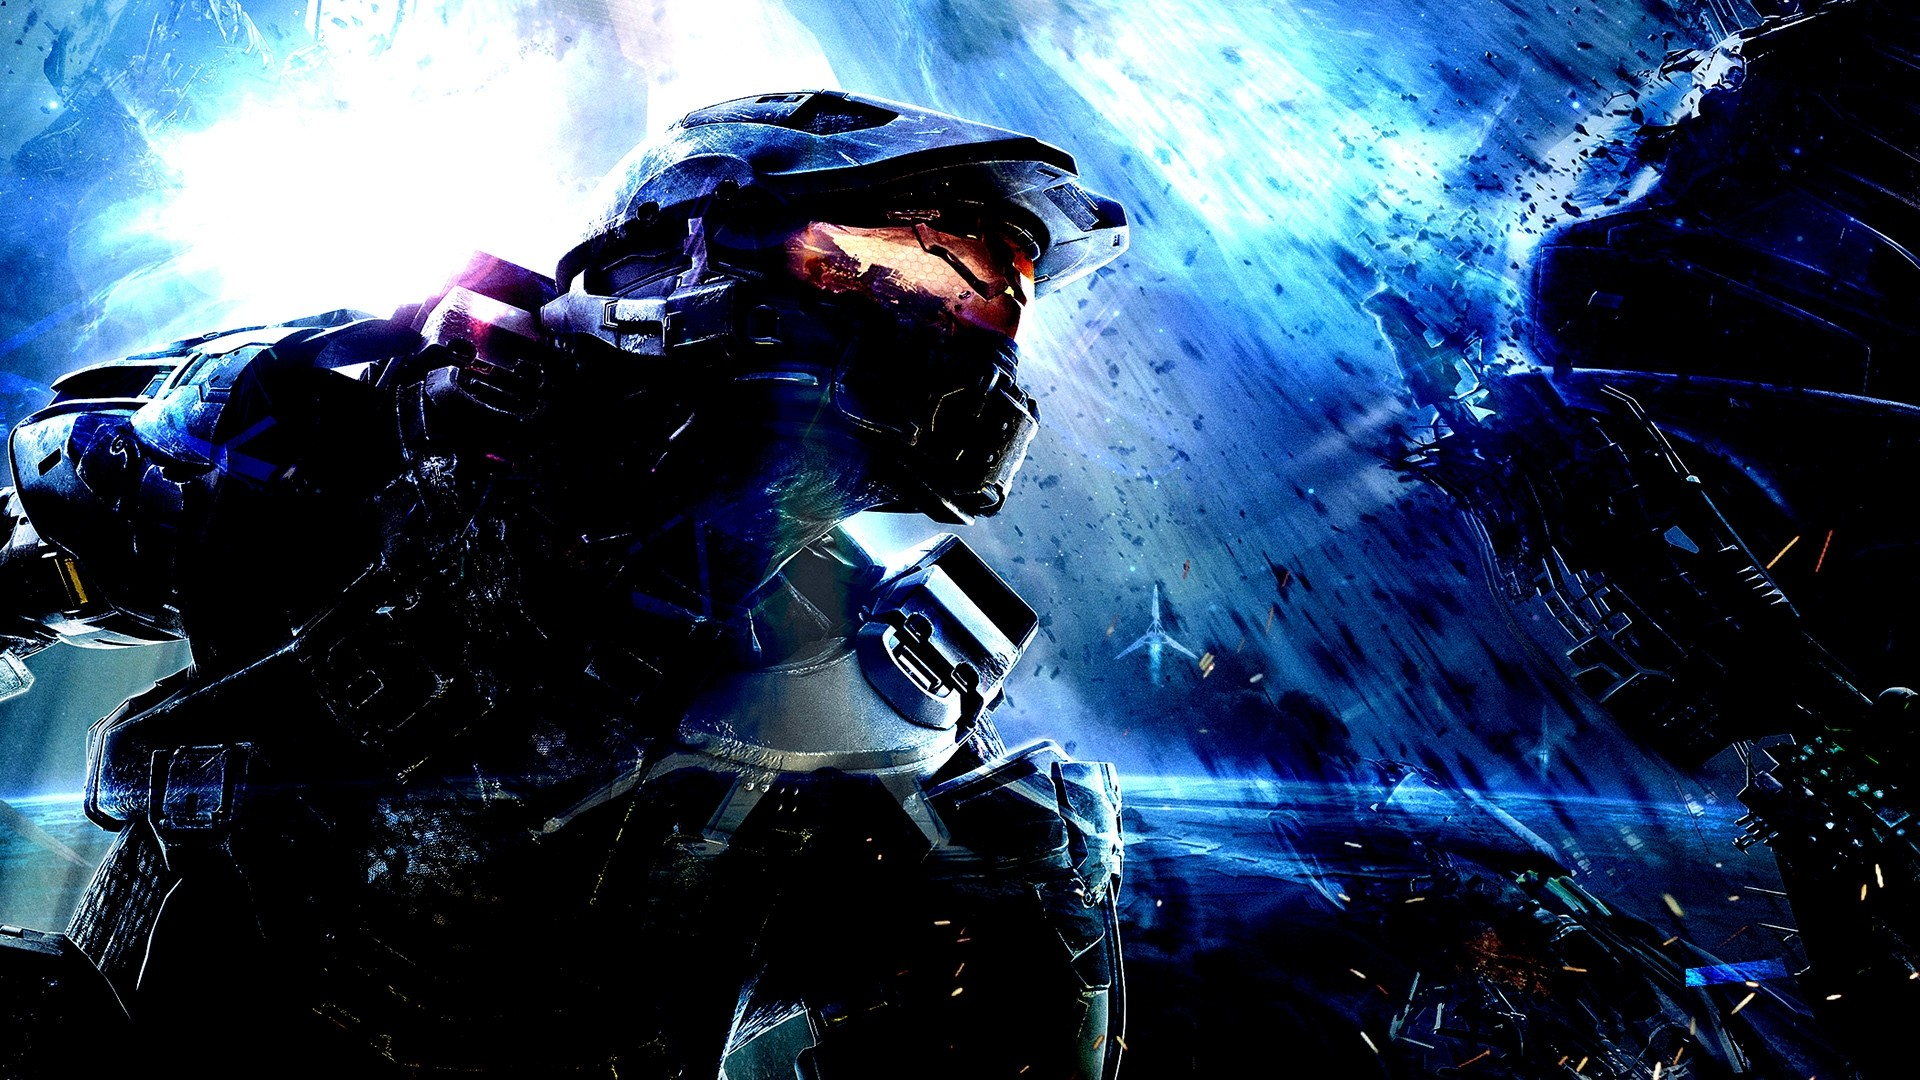 Halo 4 hd backgrounds 79 images 1920x1080 hd halo 4 wallpapers page 2 of 3 wallpaper voltagebd Choice Image